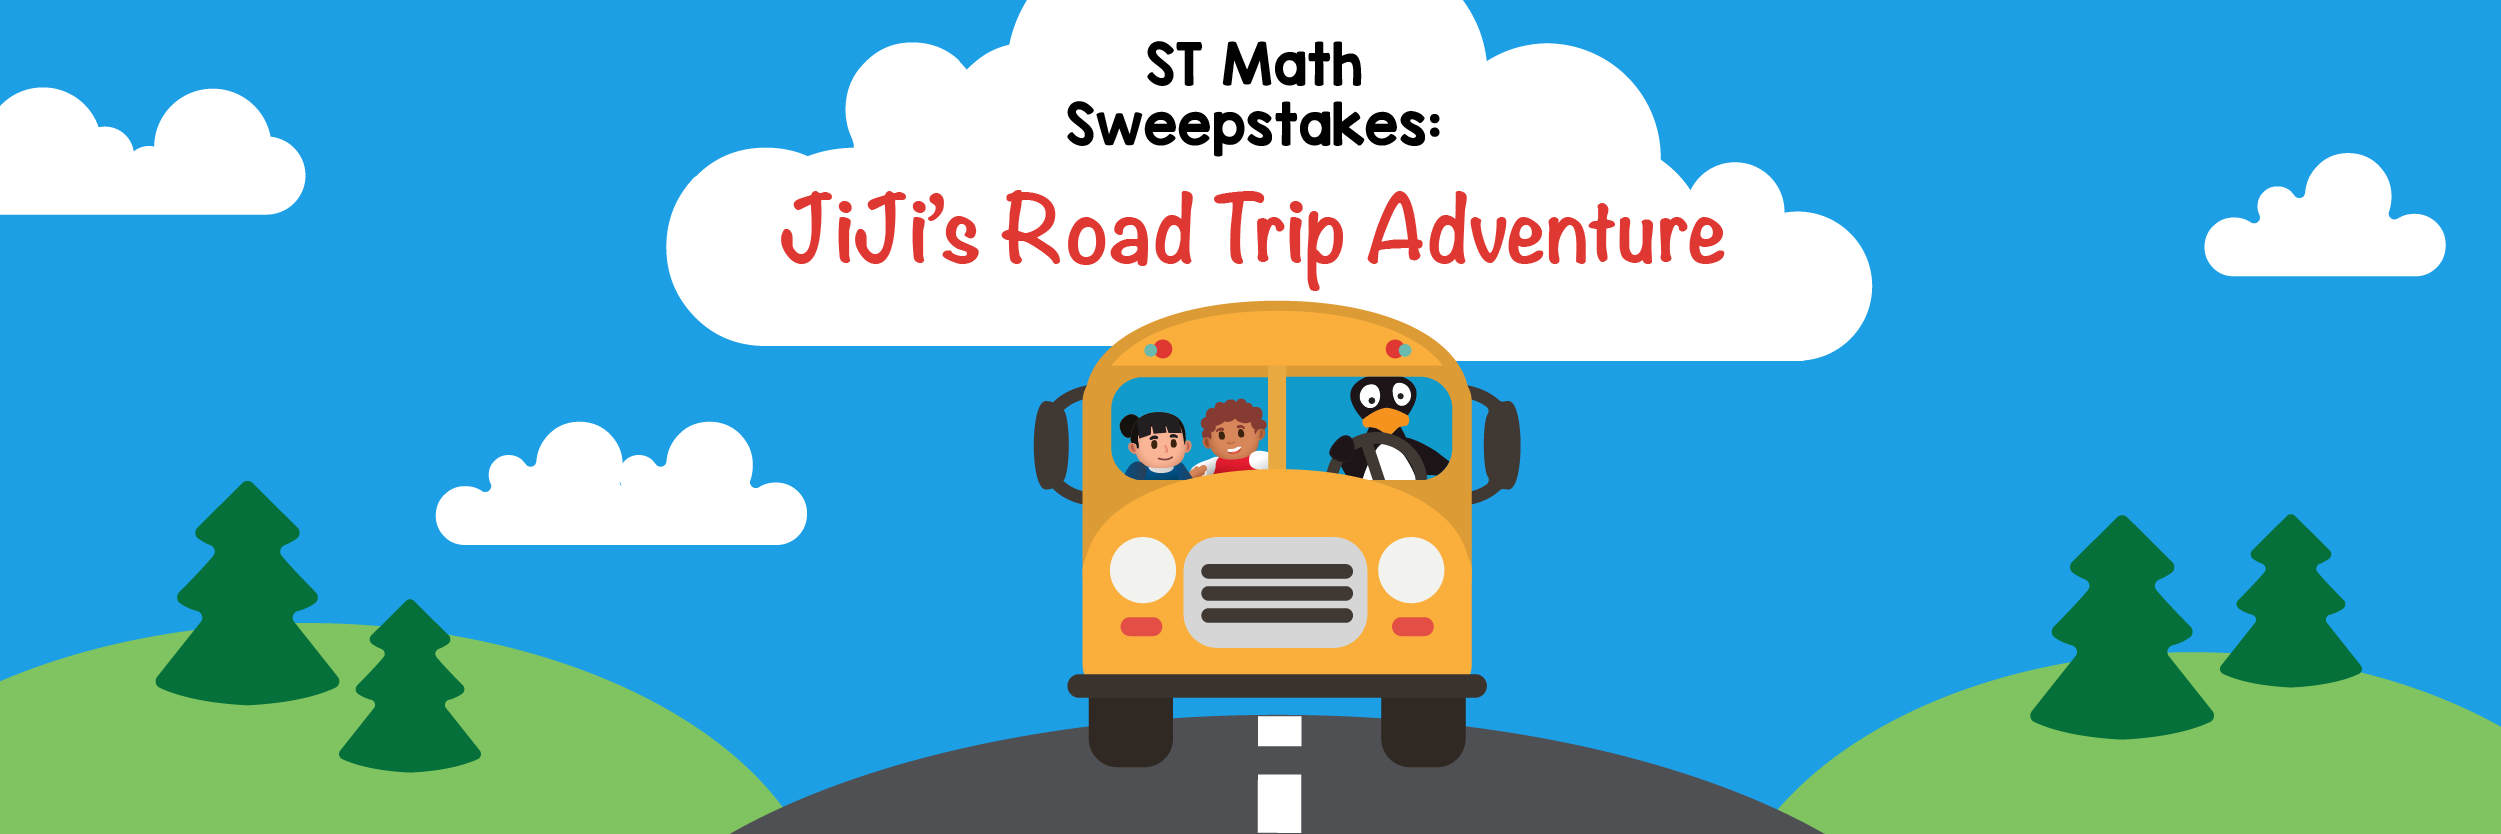 st-math-sweepstakes-jiji-road-trip-adventure